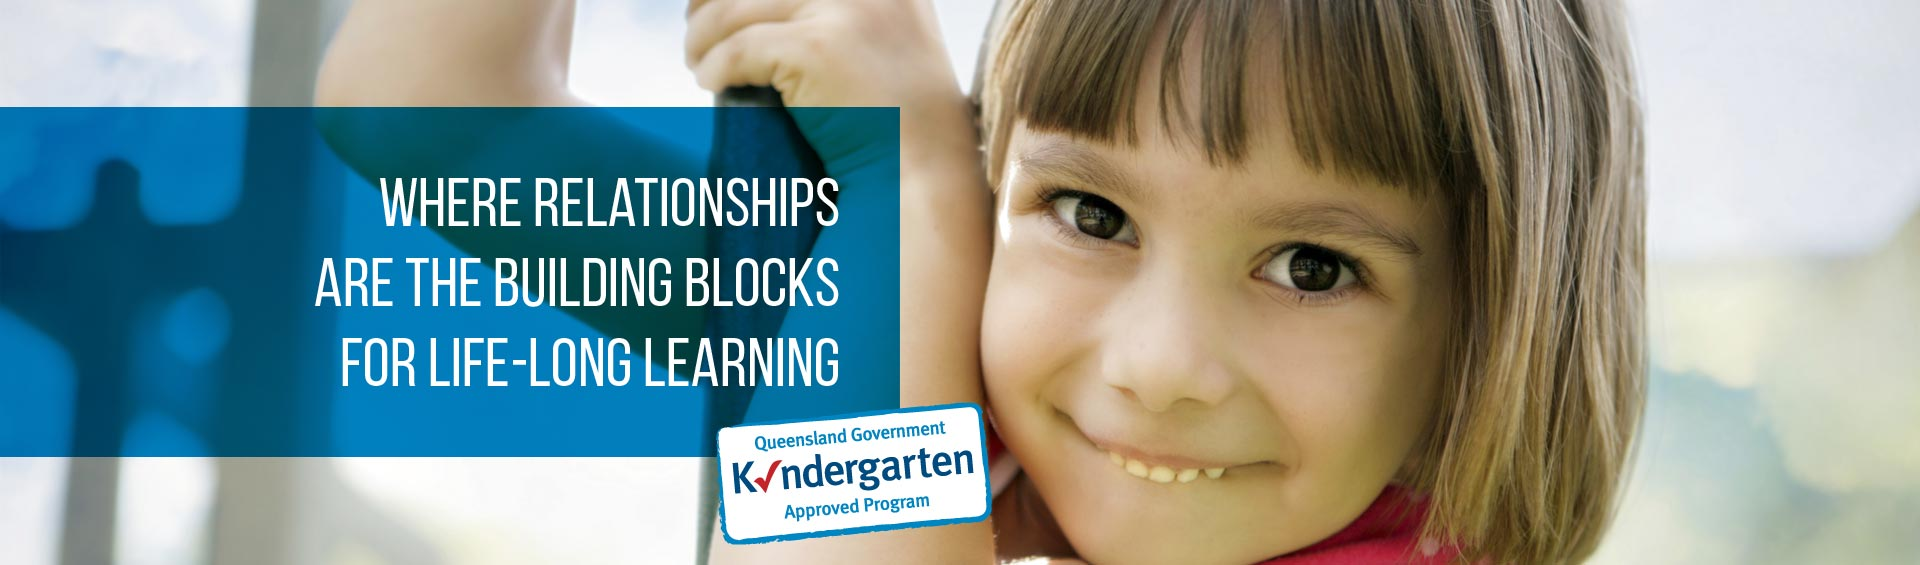 Where relationships are the building blocks for life-long learning